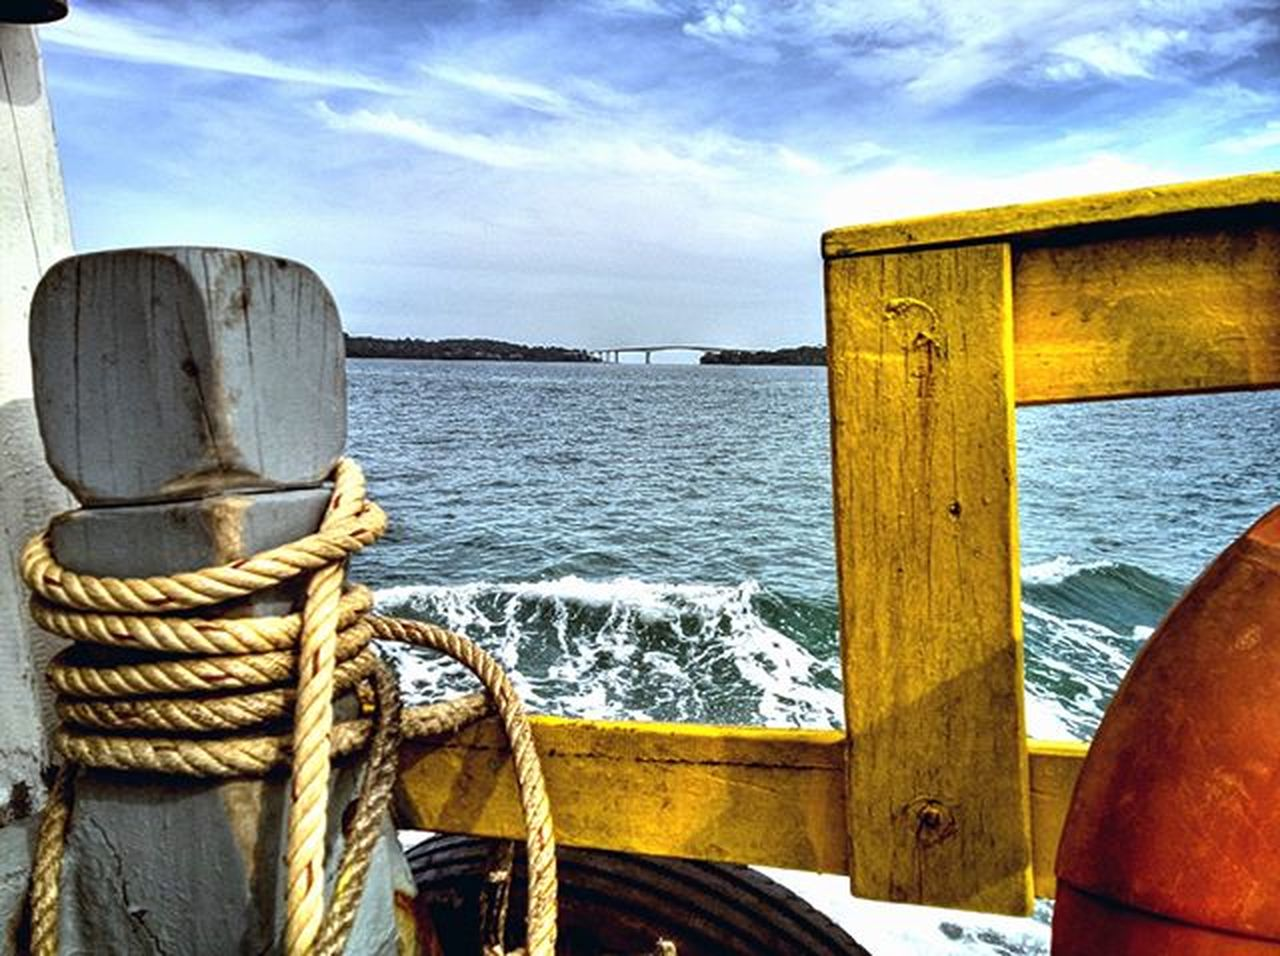 Boat view of the bridge linking Snake Island and Sihanoukville. Lumia930 Mobilephotography WindowsPhonePhotography WeLoveLumia ShotOnMyLumia  Lumiaography Theappwhisperer Makemoments MoreLumiaLove GoodRadShot TheLumians Fhotoroom Lumia PicHitMe EyeEm EyeEm_O MenchFeature Photography Nban NbanFamily Pixelpanda Visitorg Aop_Lab Natgeo Natgeotravel NatGeoYourShot AdventureVisuals Cambodia PhnomPenh My_Mobile_Photography @fhotoroom_ @thelumians @lumiavoices @pichitme @windowsphonephotography @microsoftwindowsphone @microsoftlumiaphotography @mobile_photography @moment_lens @goodradshot @mobilephotoblog @street_hunters @lumia @pixel_panda_ @eyeem_o @photocrowd @photoadvices @nothingbutanokia @worldphotoorg